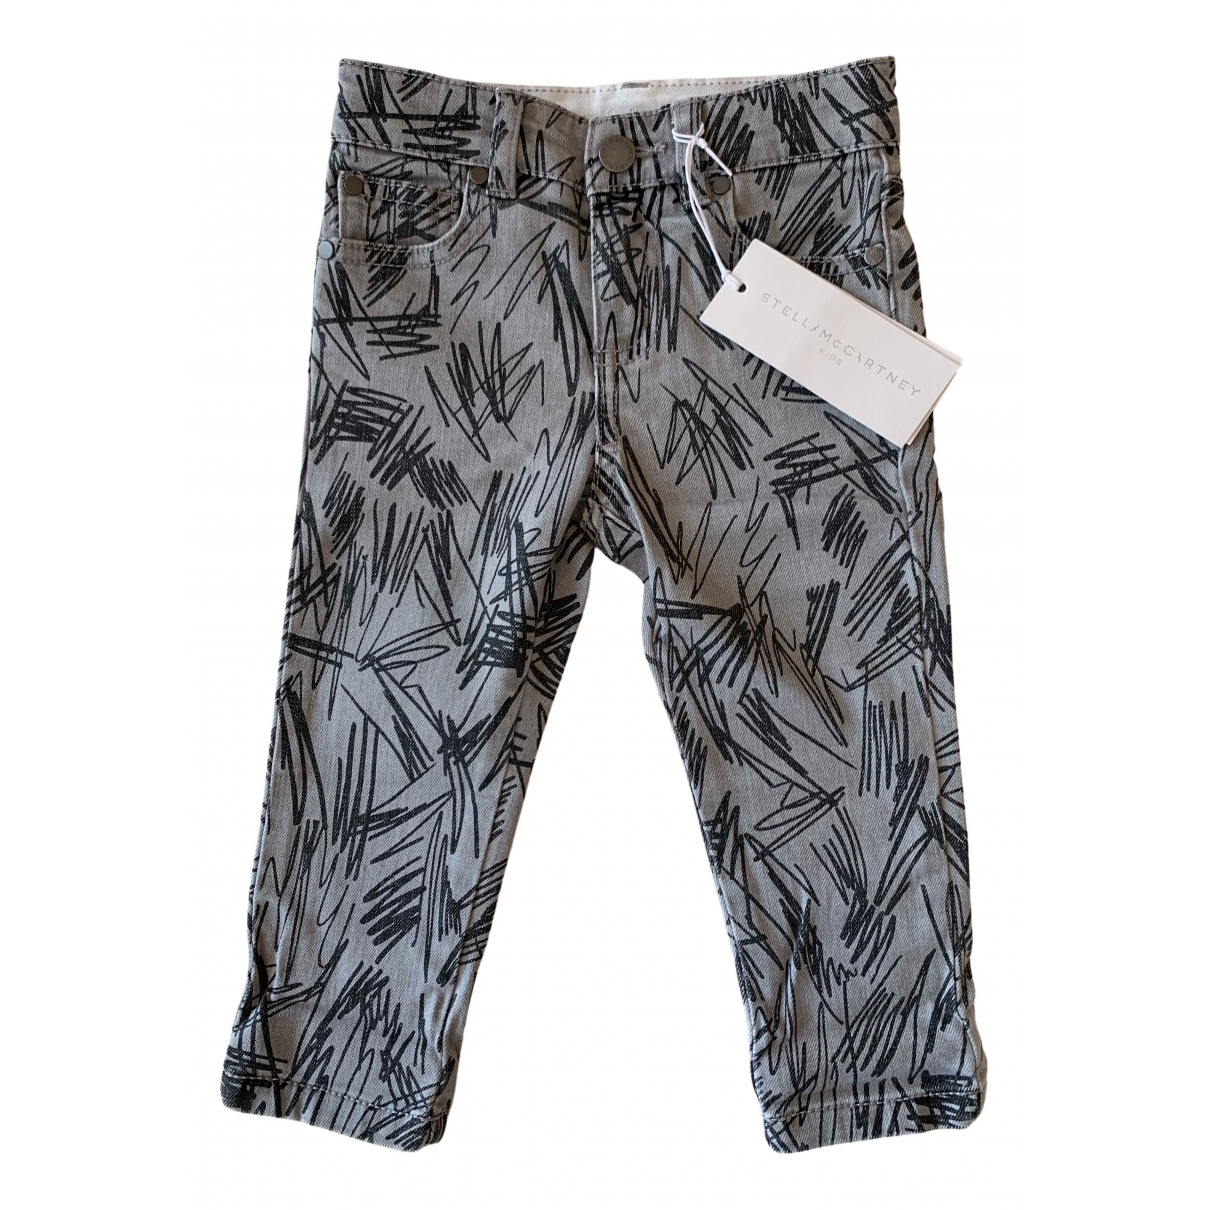 Stella Mccartney Kids N Grey Cotton Trousers for Kids 2 years - up to 86cm FR